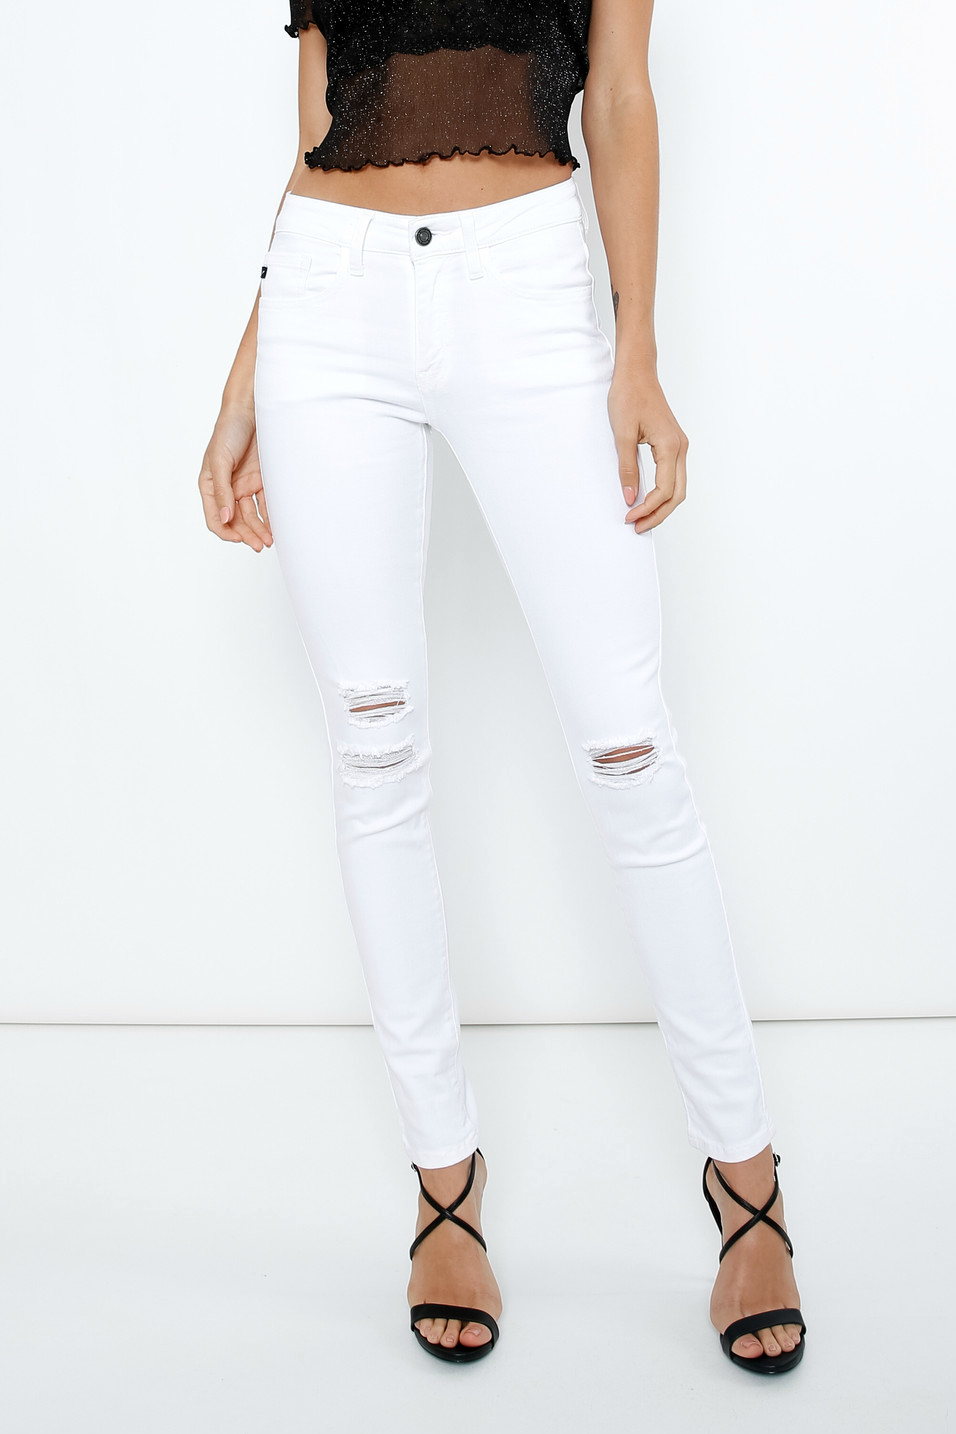 white distressed skinny jeans | boutique bleu spokane